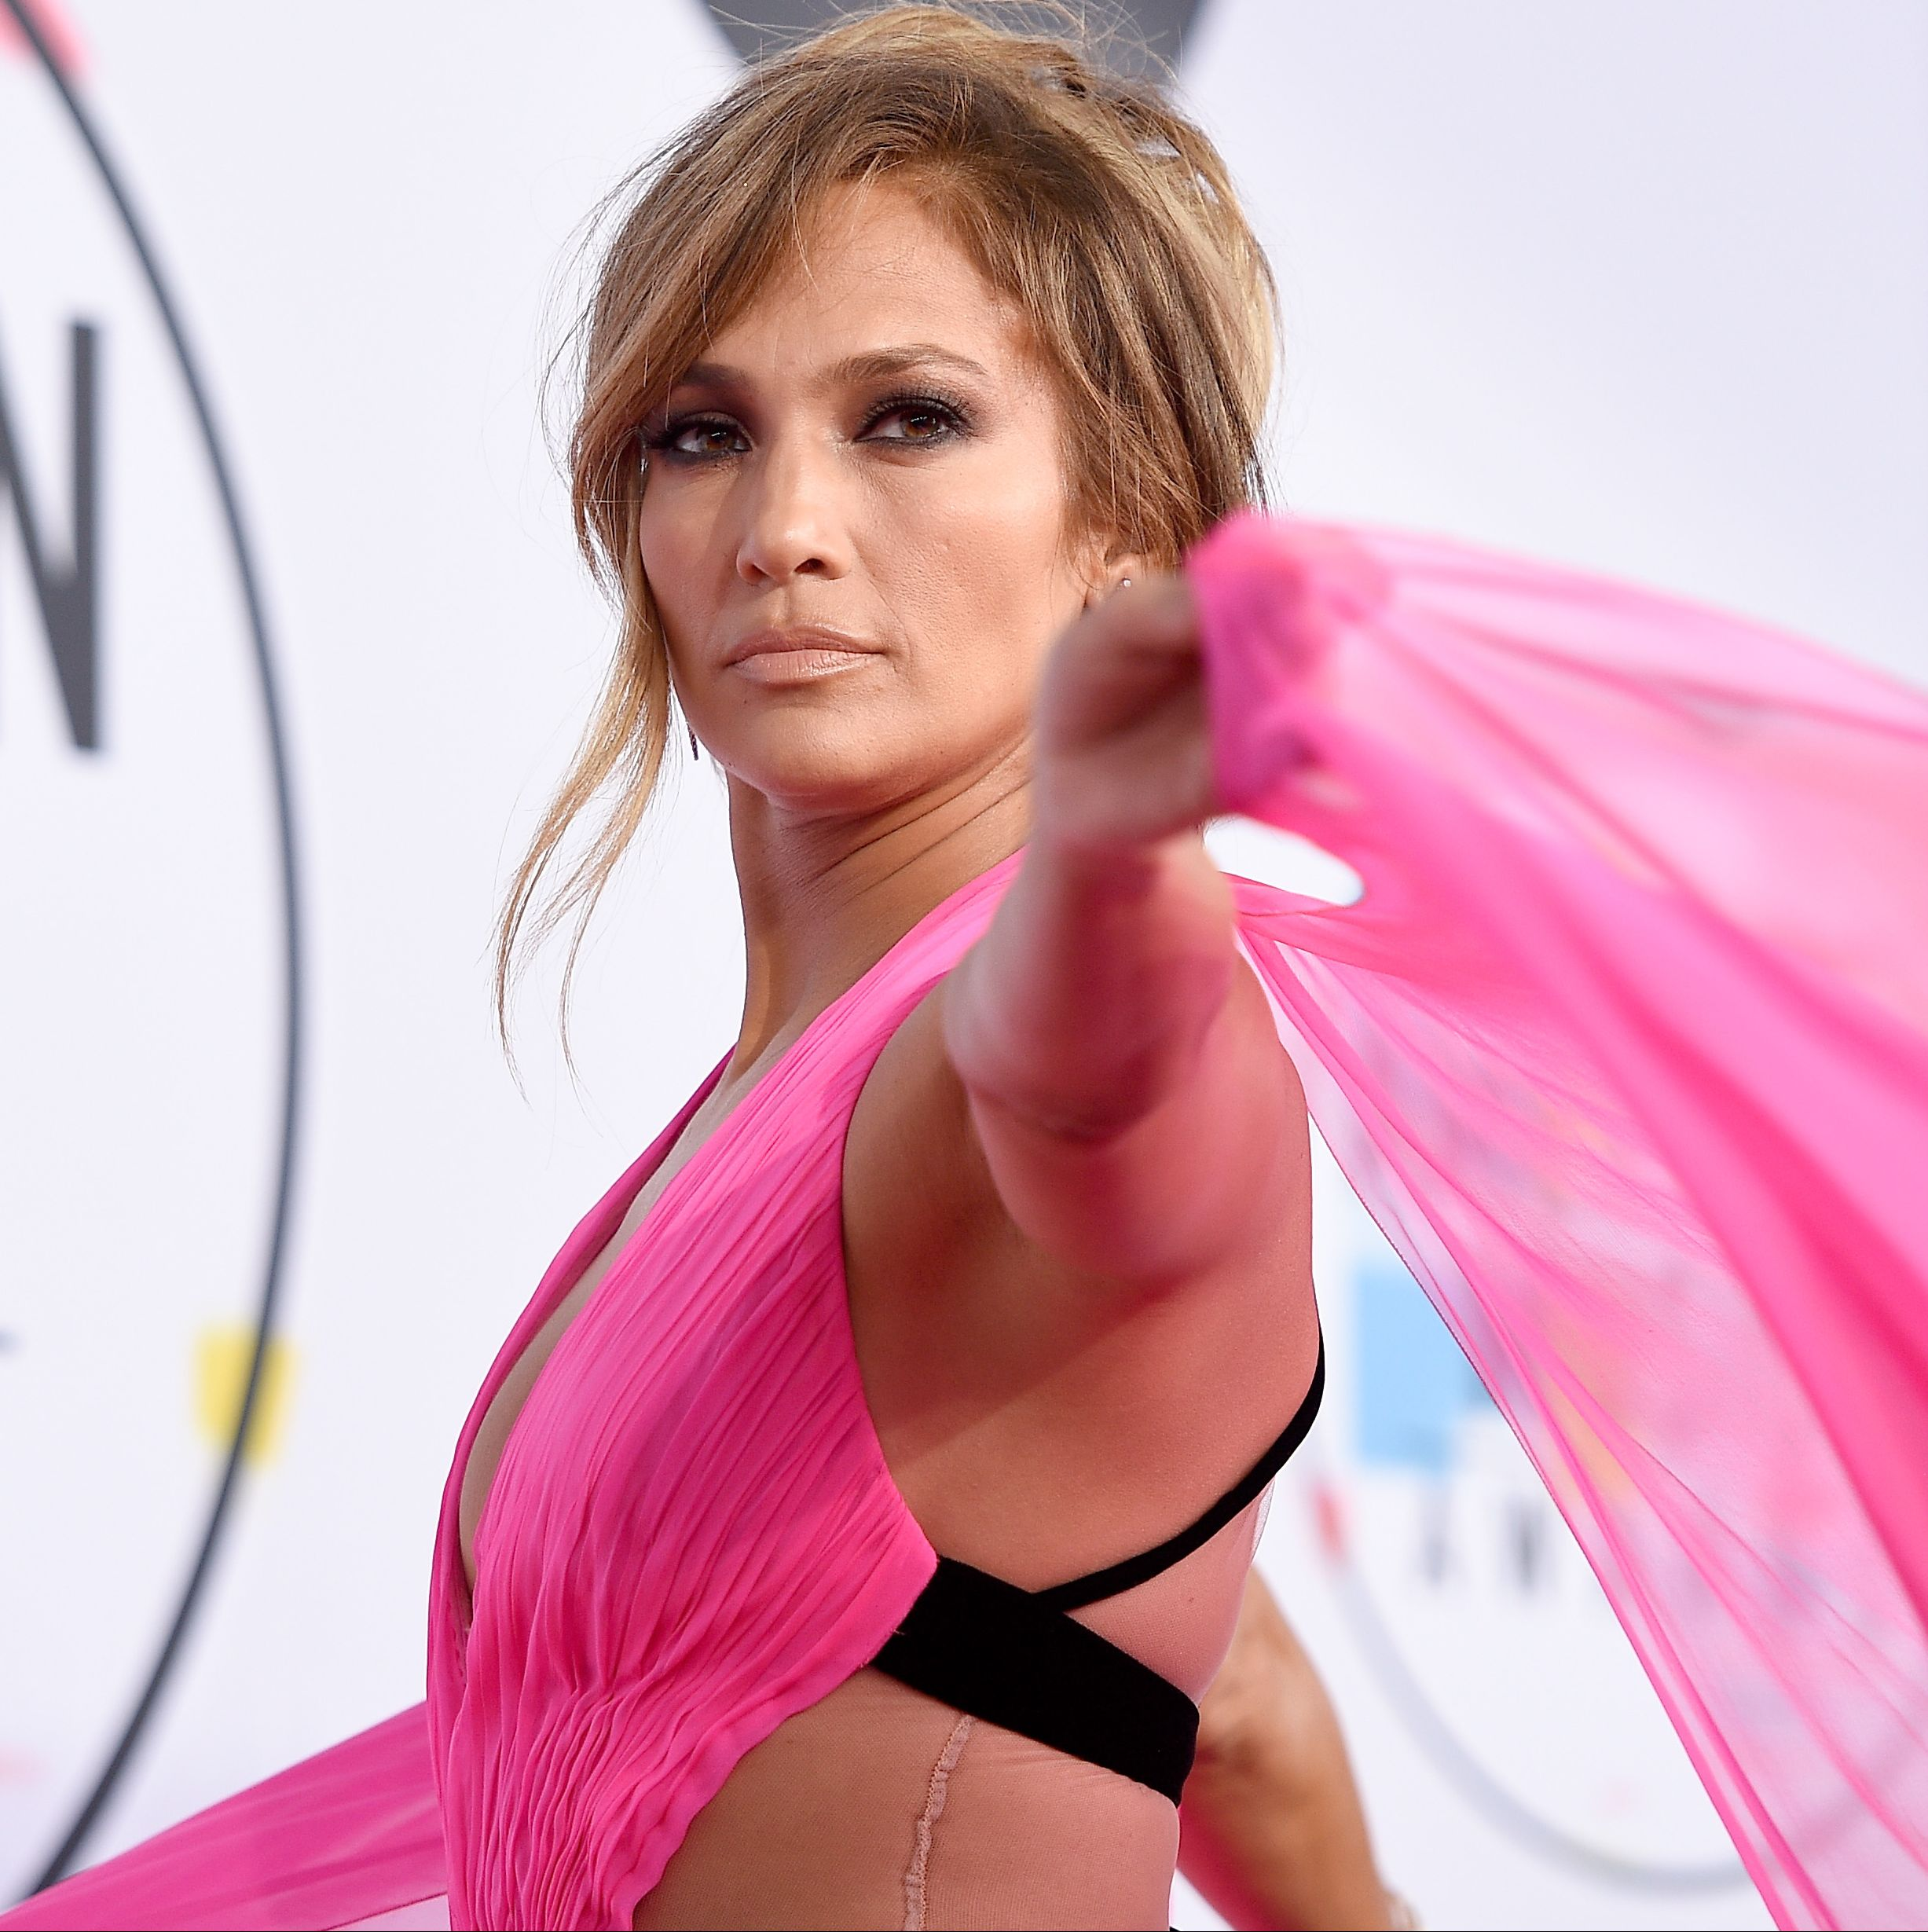 J.Lo Just Blessed Us All With This Sexy Hot-Pink Cutout Lewk and We'll Never Be the Same